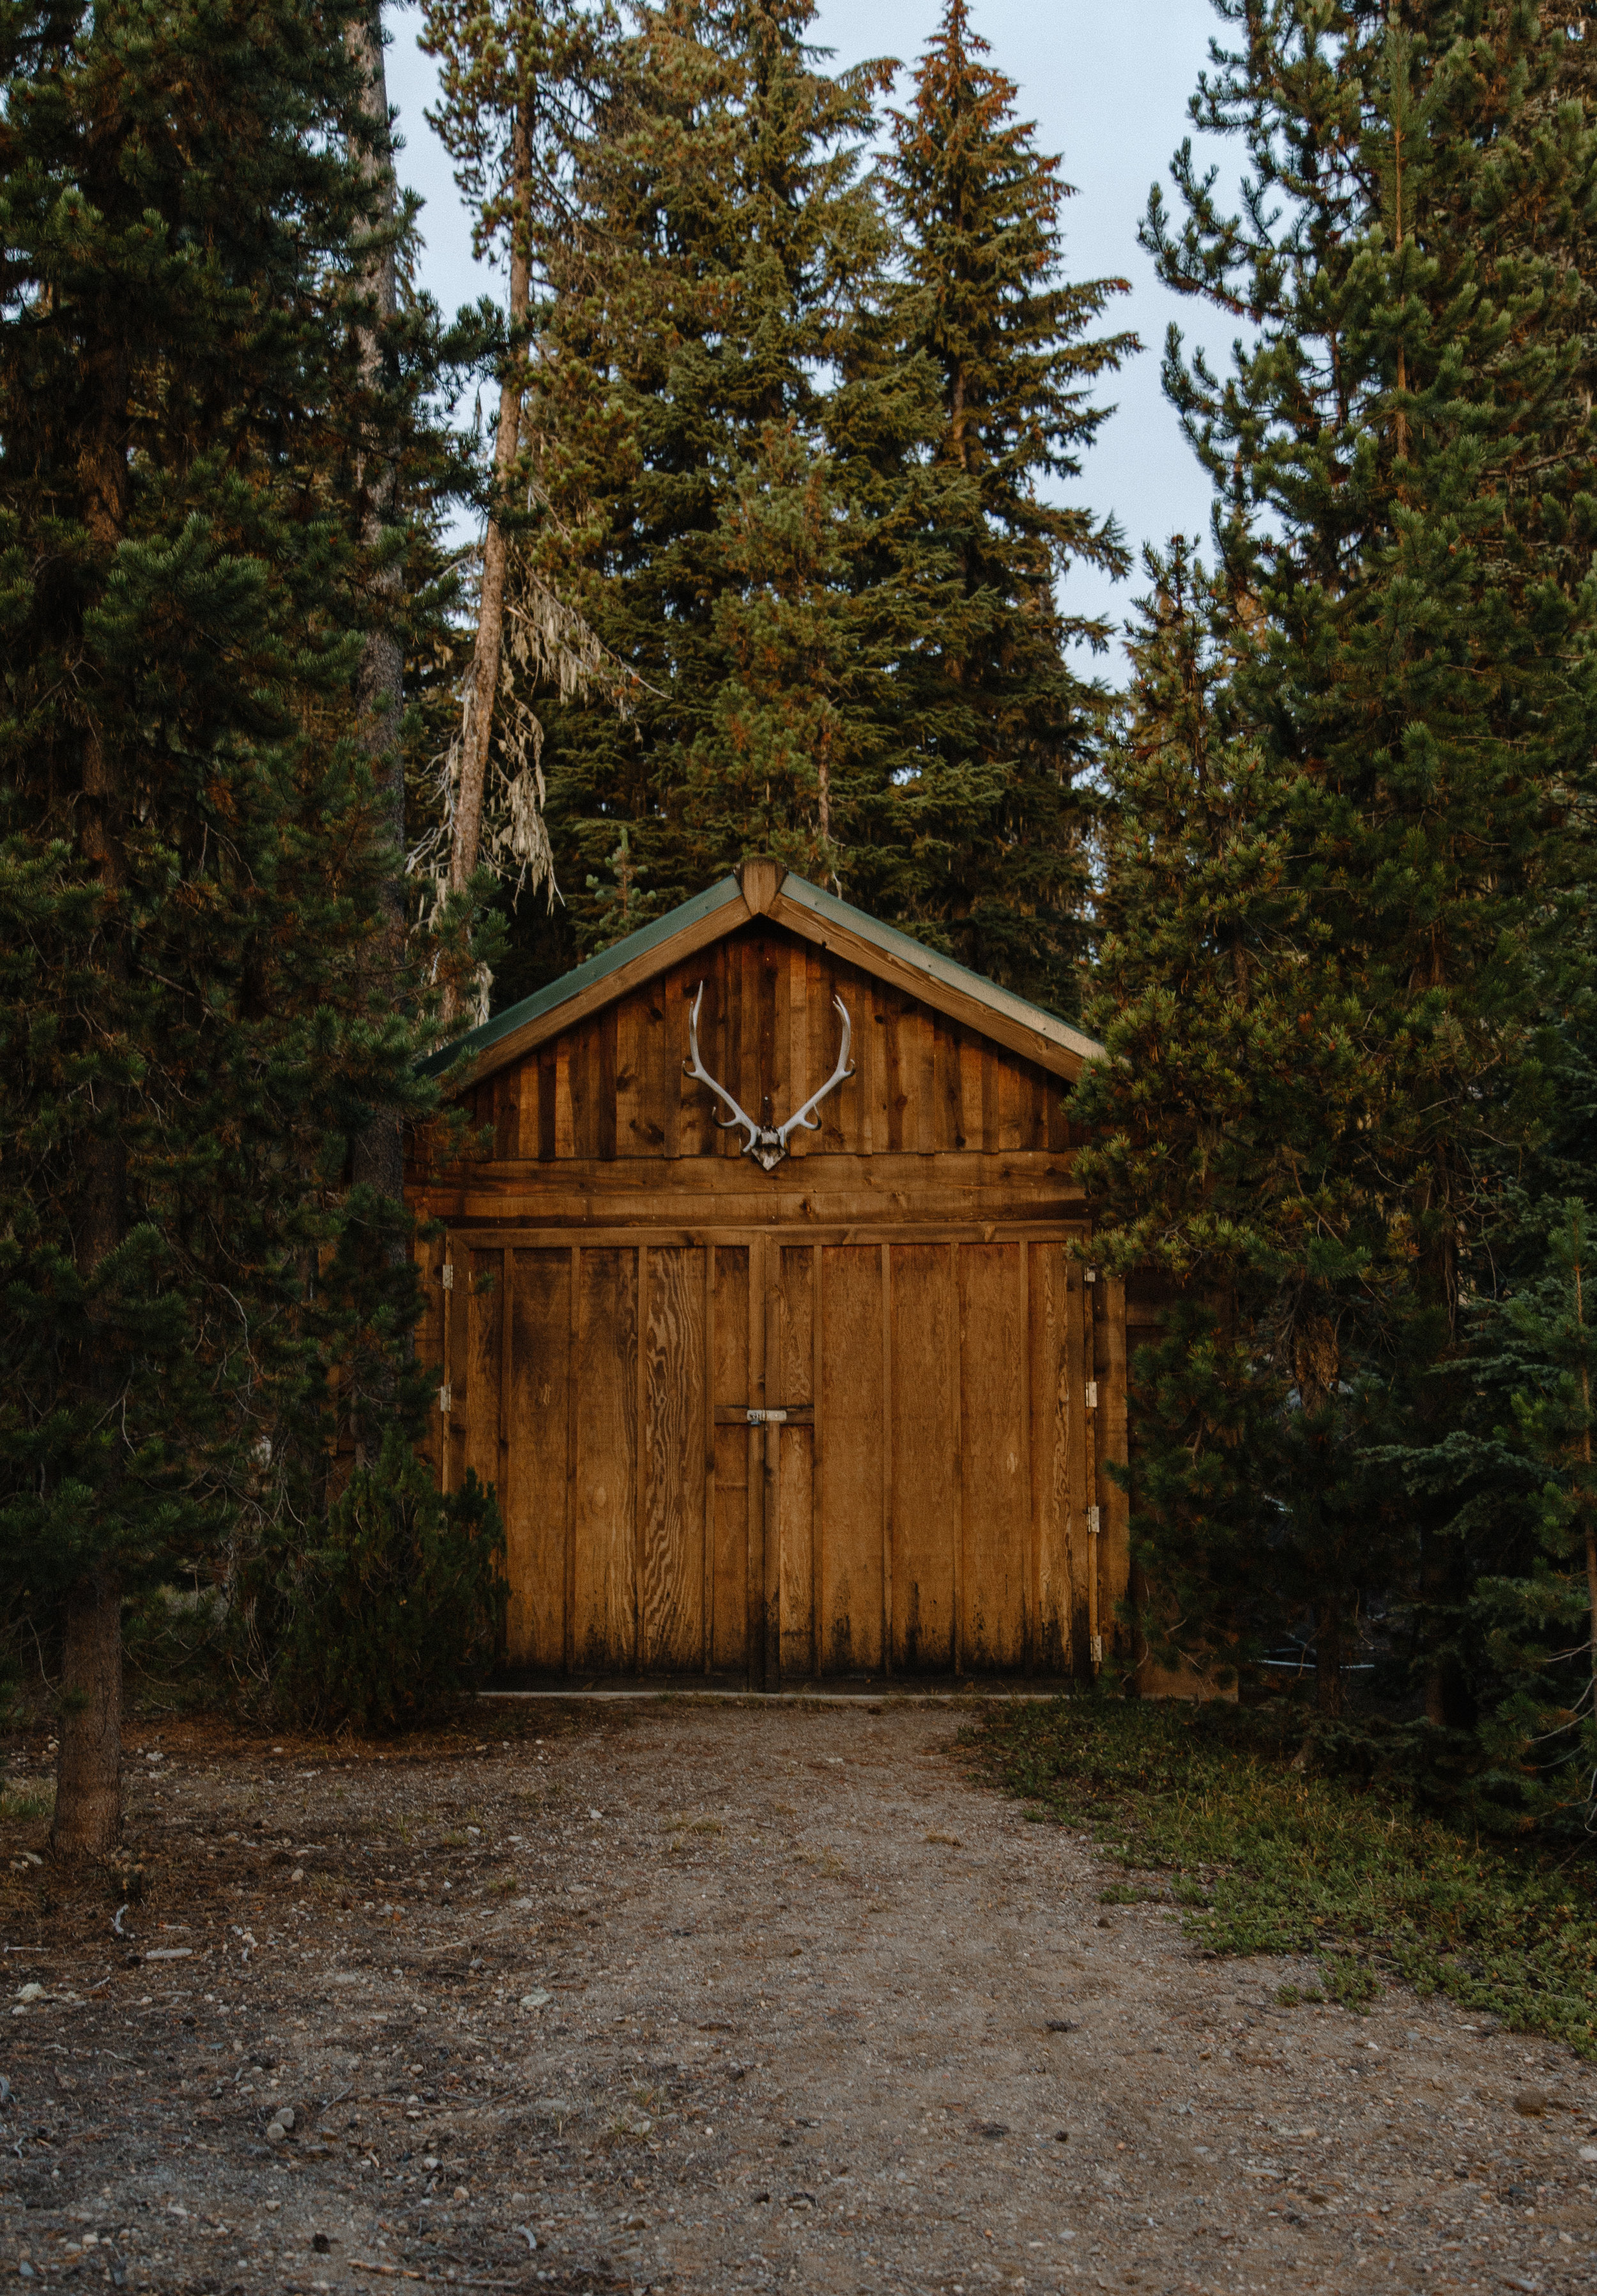 Elk Lake Resort is filled with a variety of public and private cabins spread around the vicinity of the lake. This rustic shack was tucked in the forest behind one of the cabins people can rent for the summer.